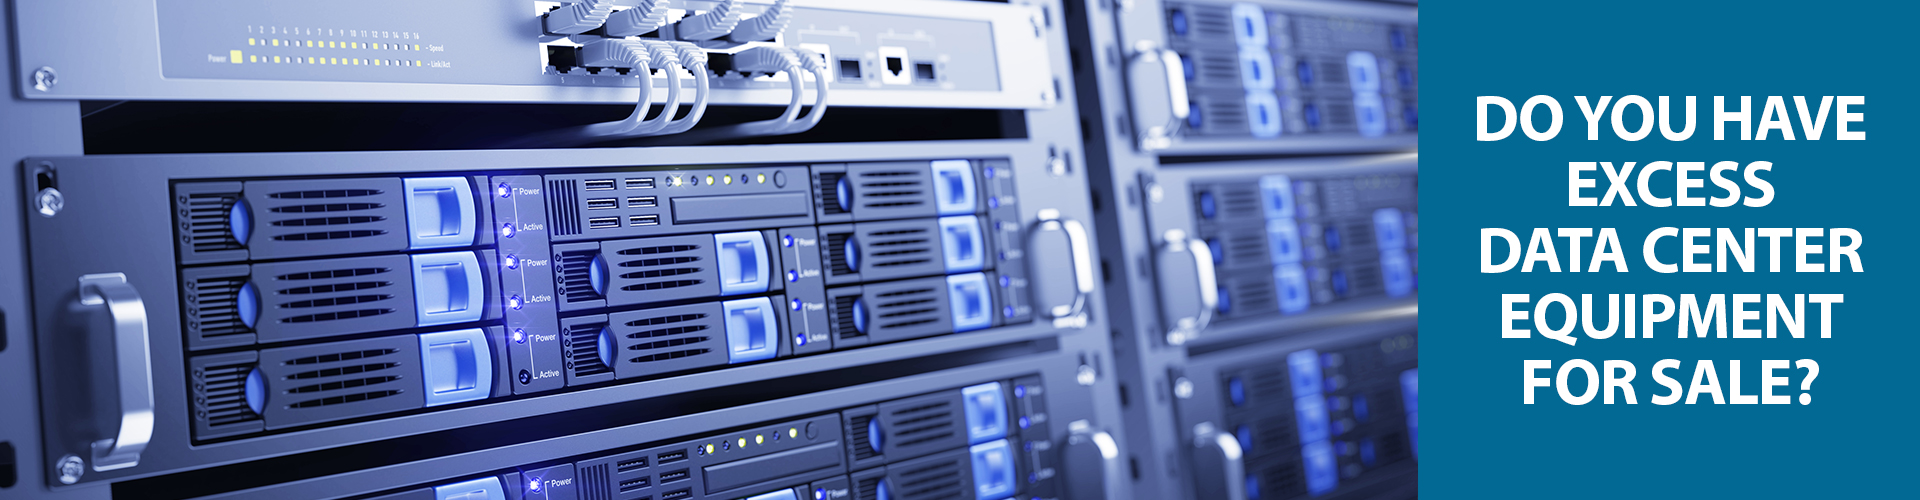 Do you have excess or unwanted data center hardware for sale?